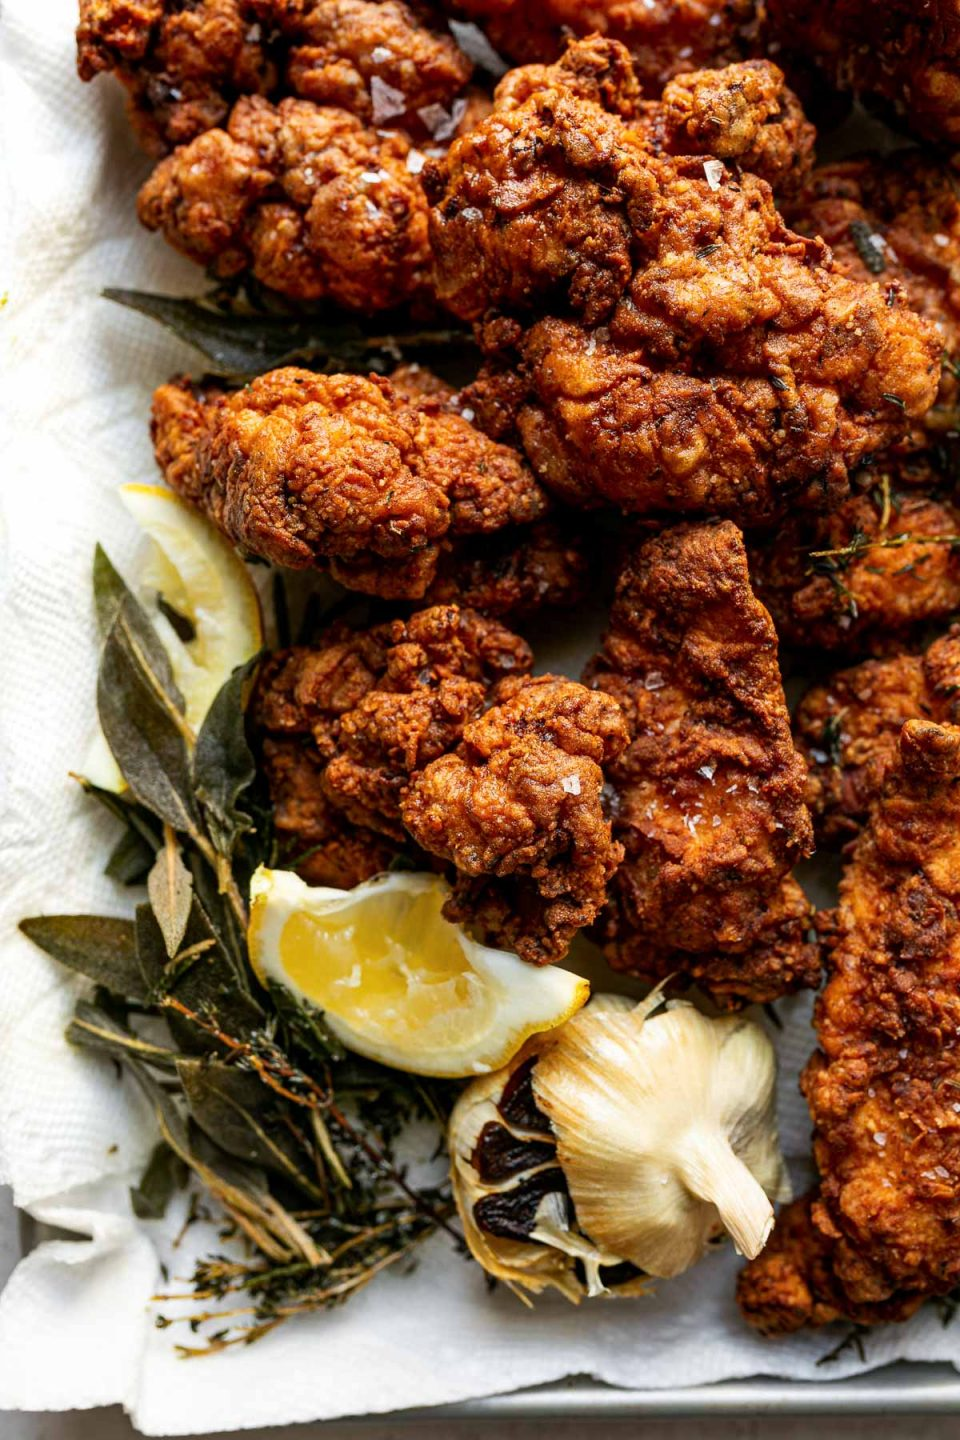 A close up shot of crispy, golden brown fried chicken piled onto a quarter sheet pan lined with paper towels with leftover herbs & garlic from the frying oil and two lemon slices resting next to it.